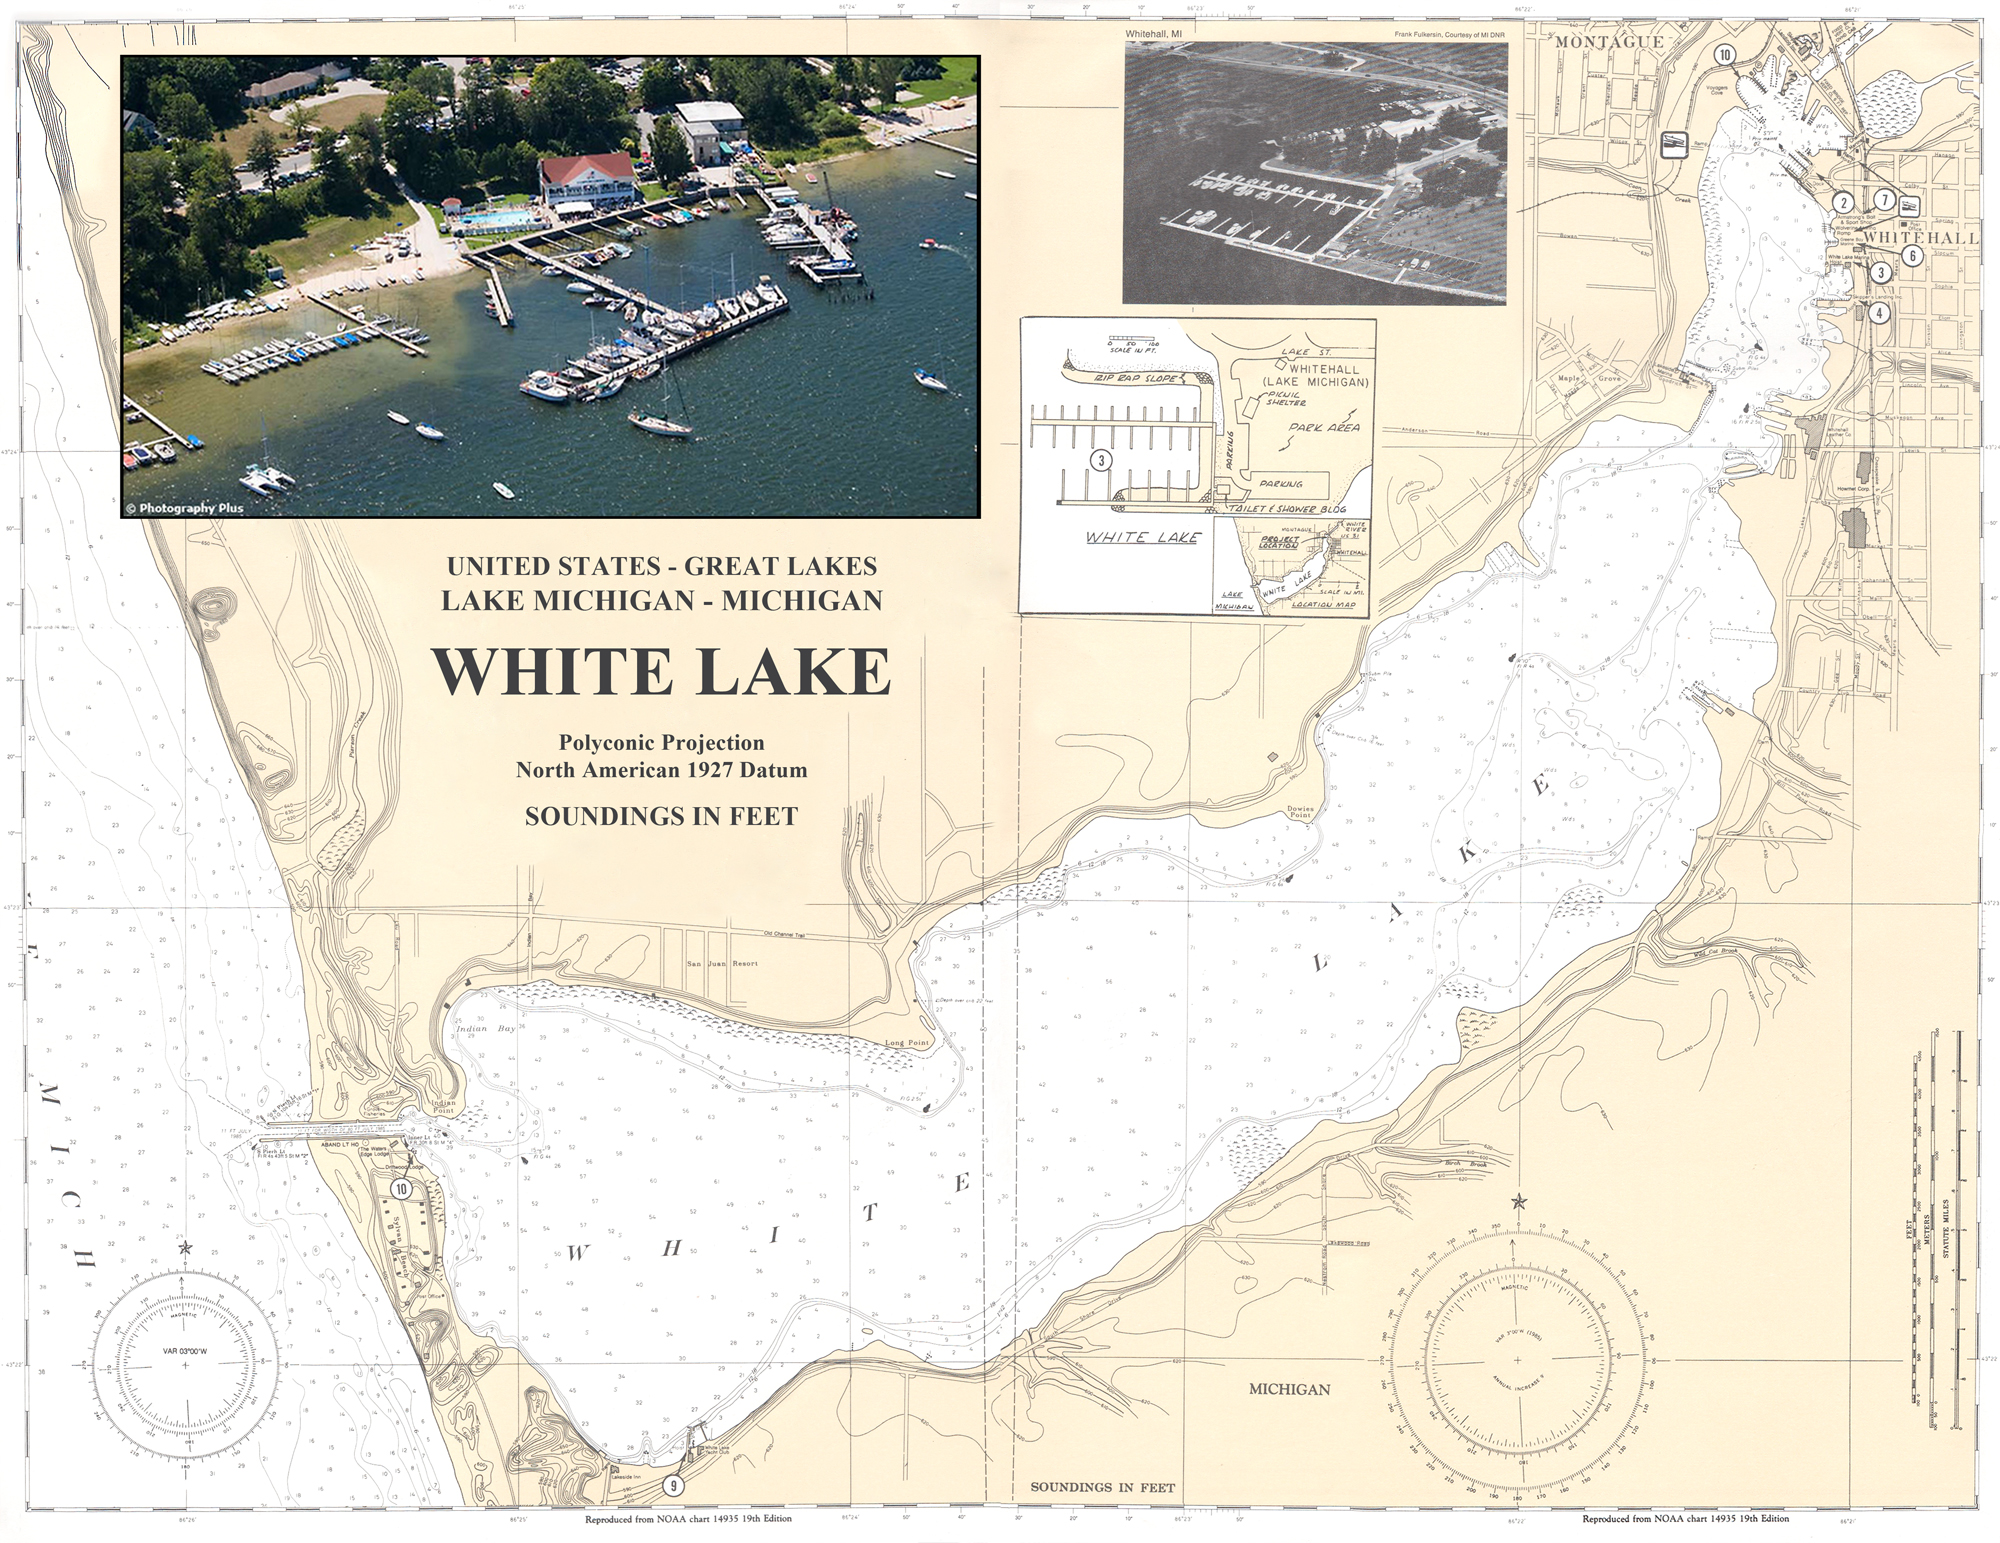 Regatta Maps - WMYA - Western Michigan Yachting Association